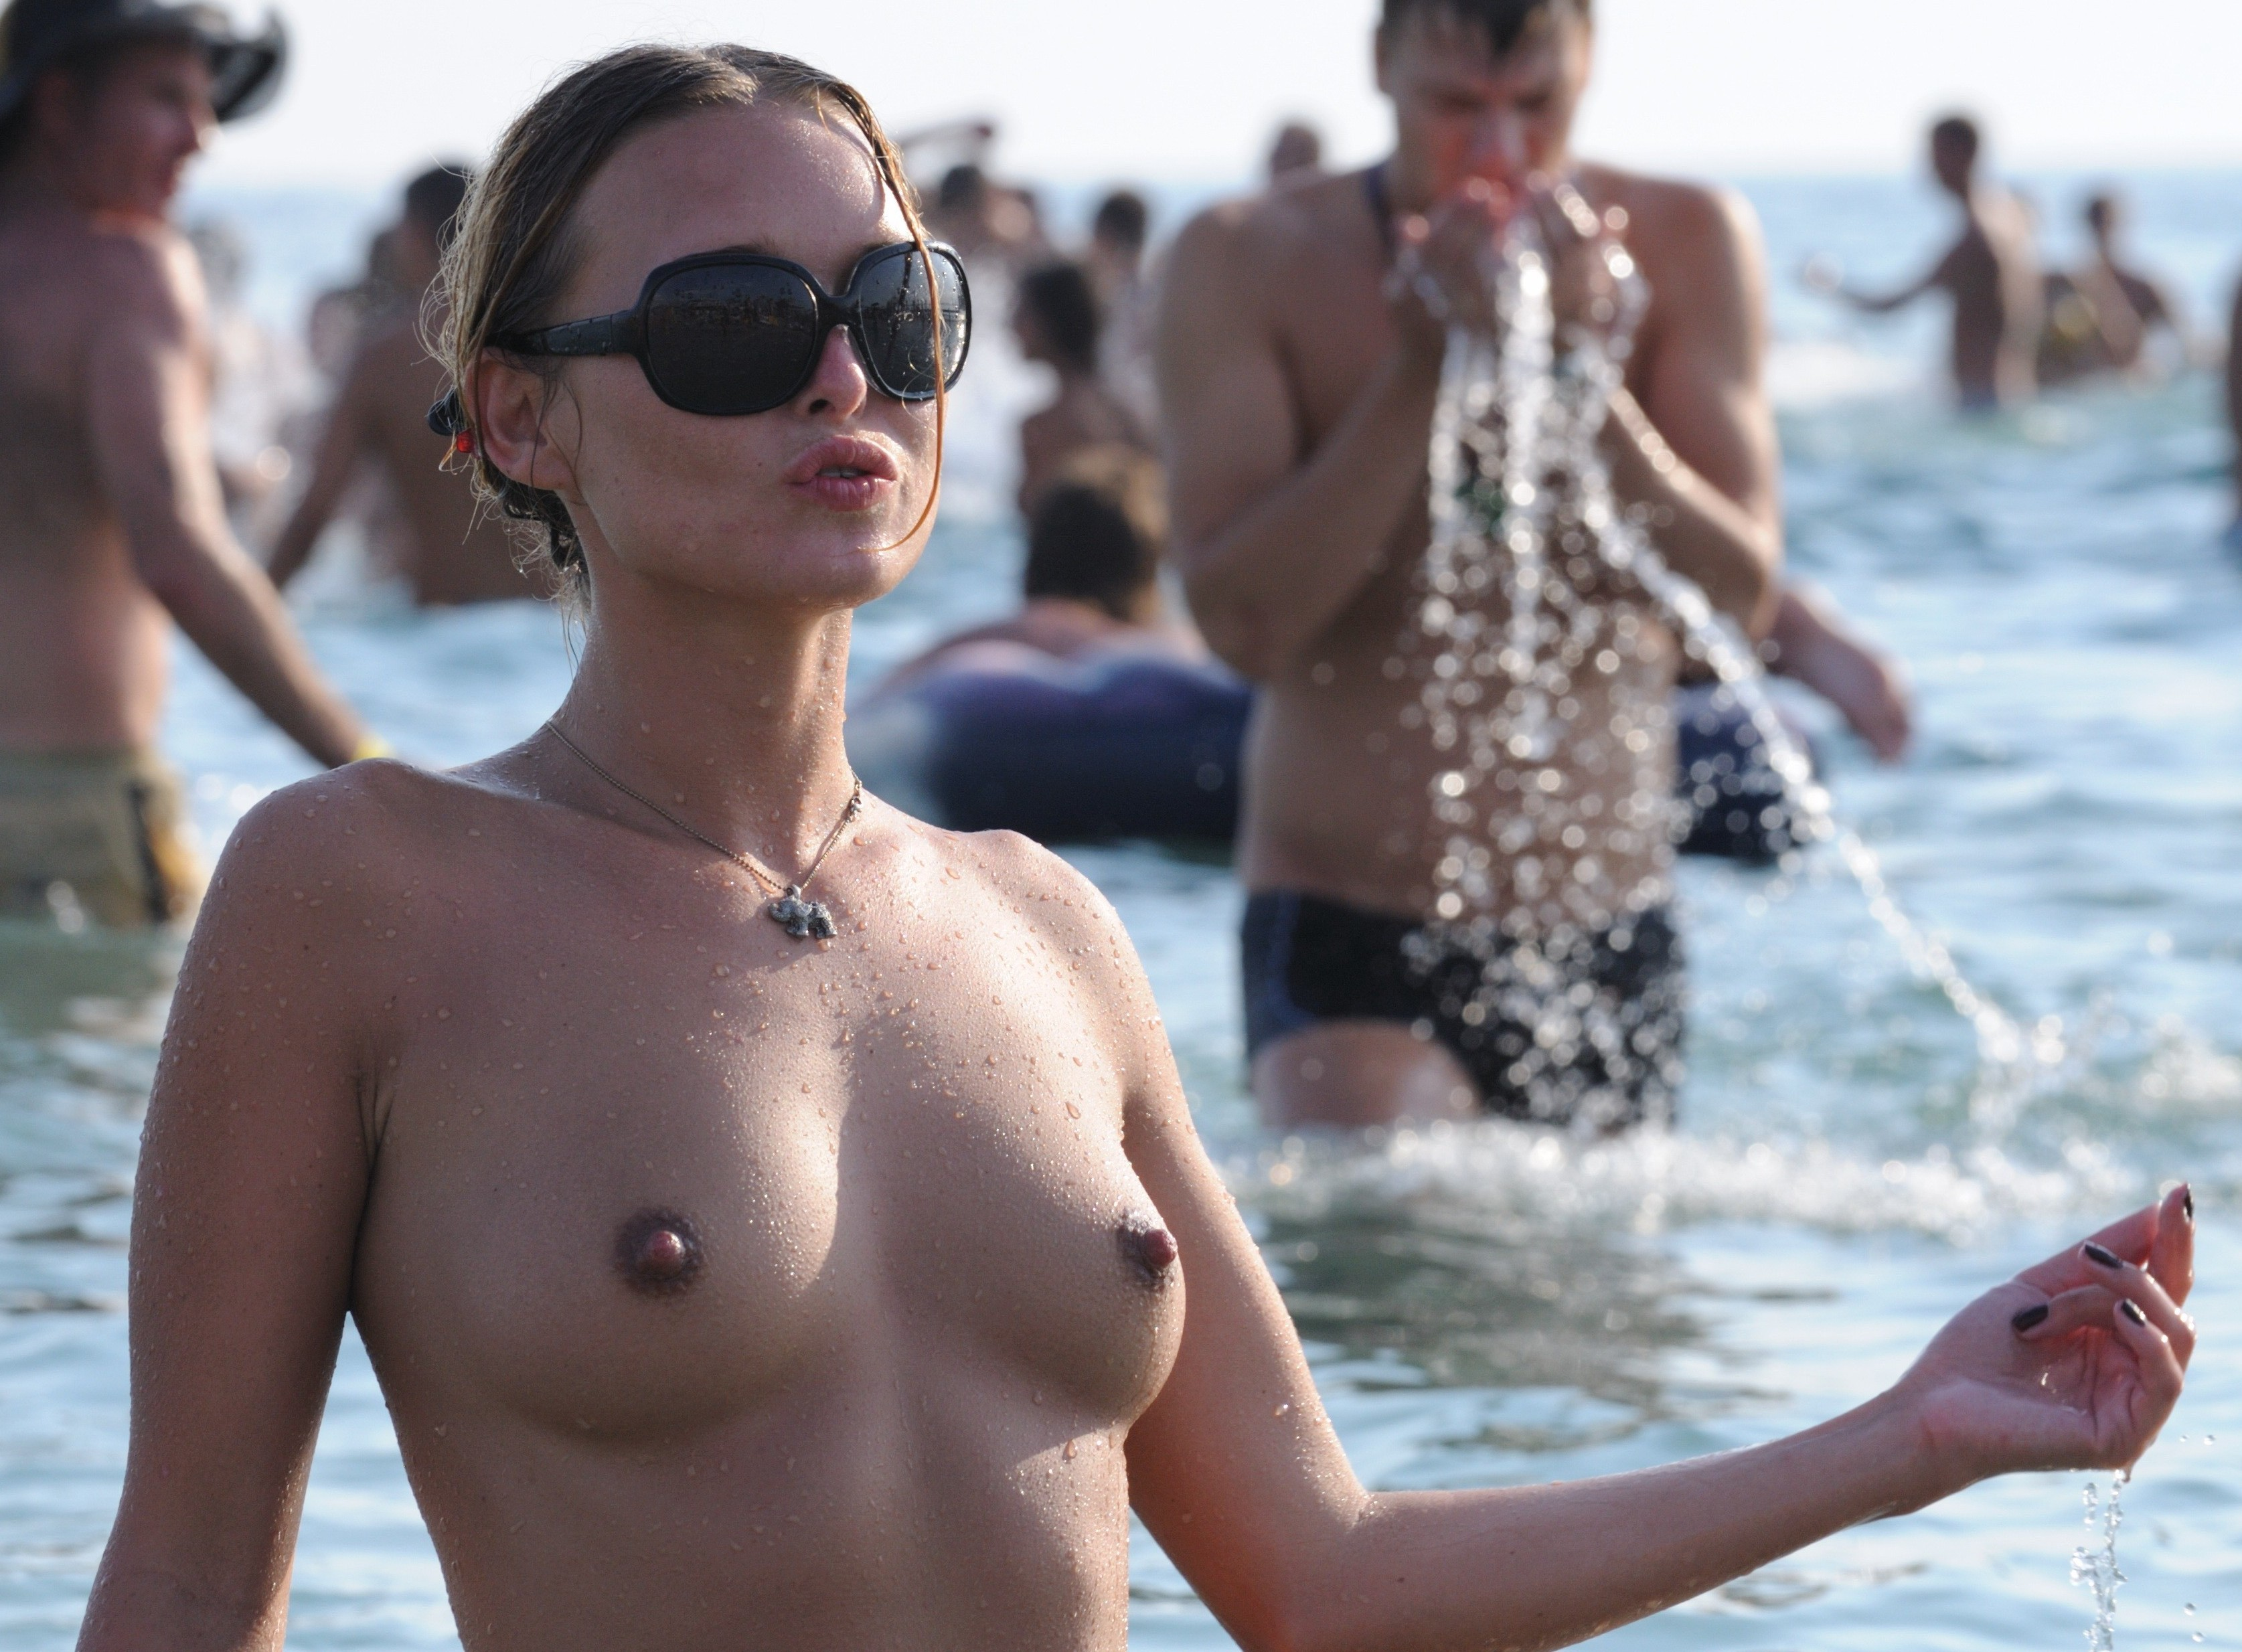 nudists-girls-boobs-beach-topless-mix-vol7-72